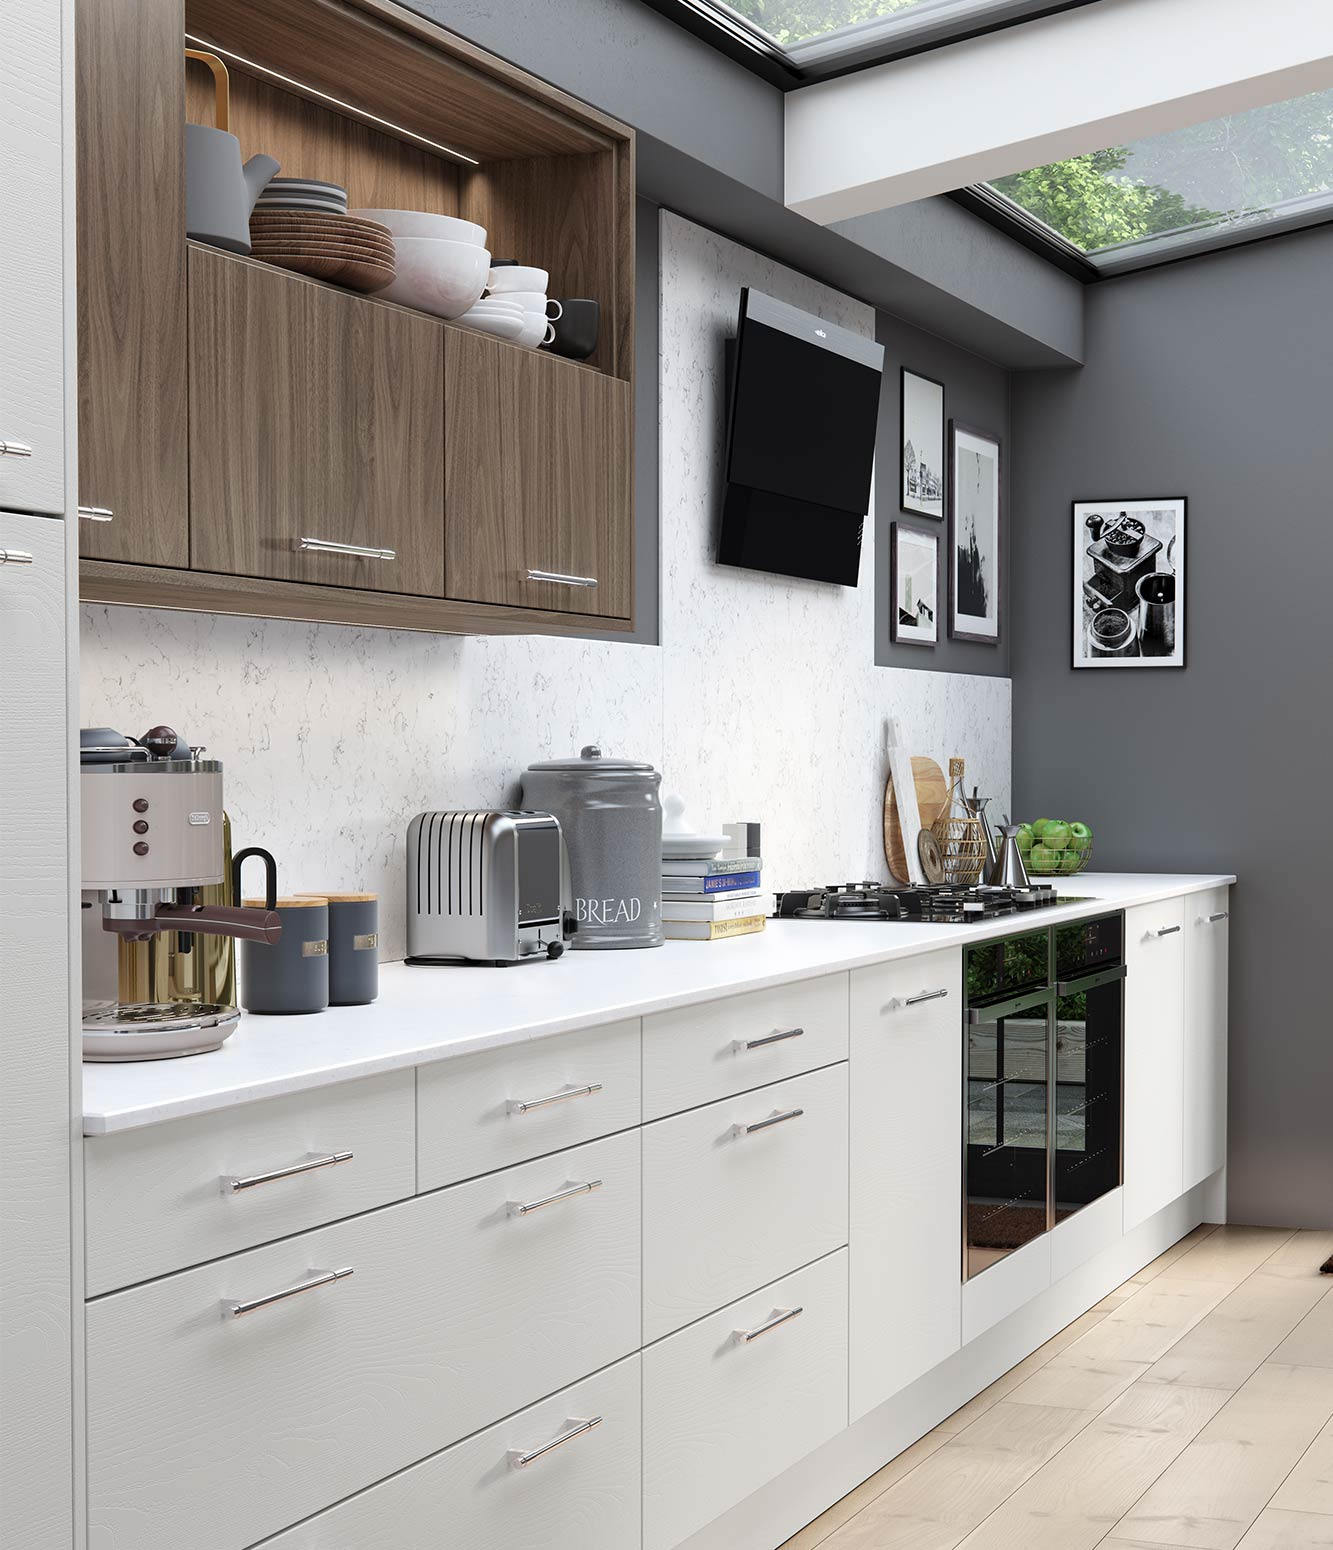 Masterclass-kitchen-Larna-light-grey-graphite-madoc-tuscan-walnut-cameo-4